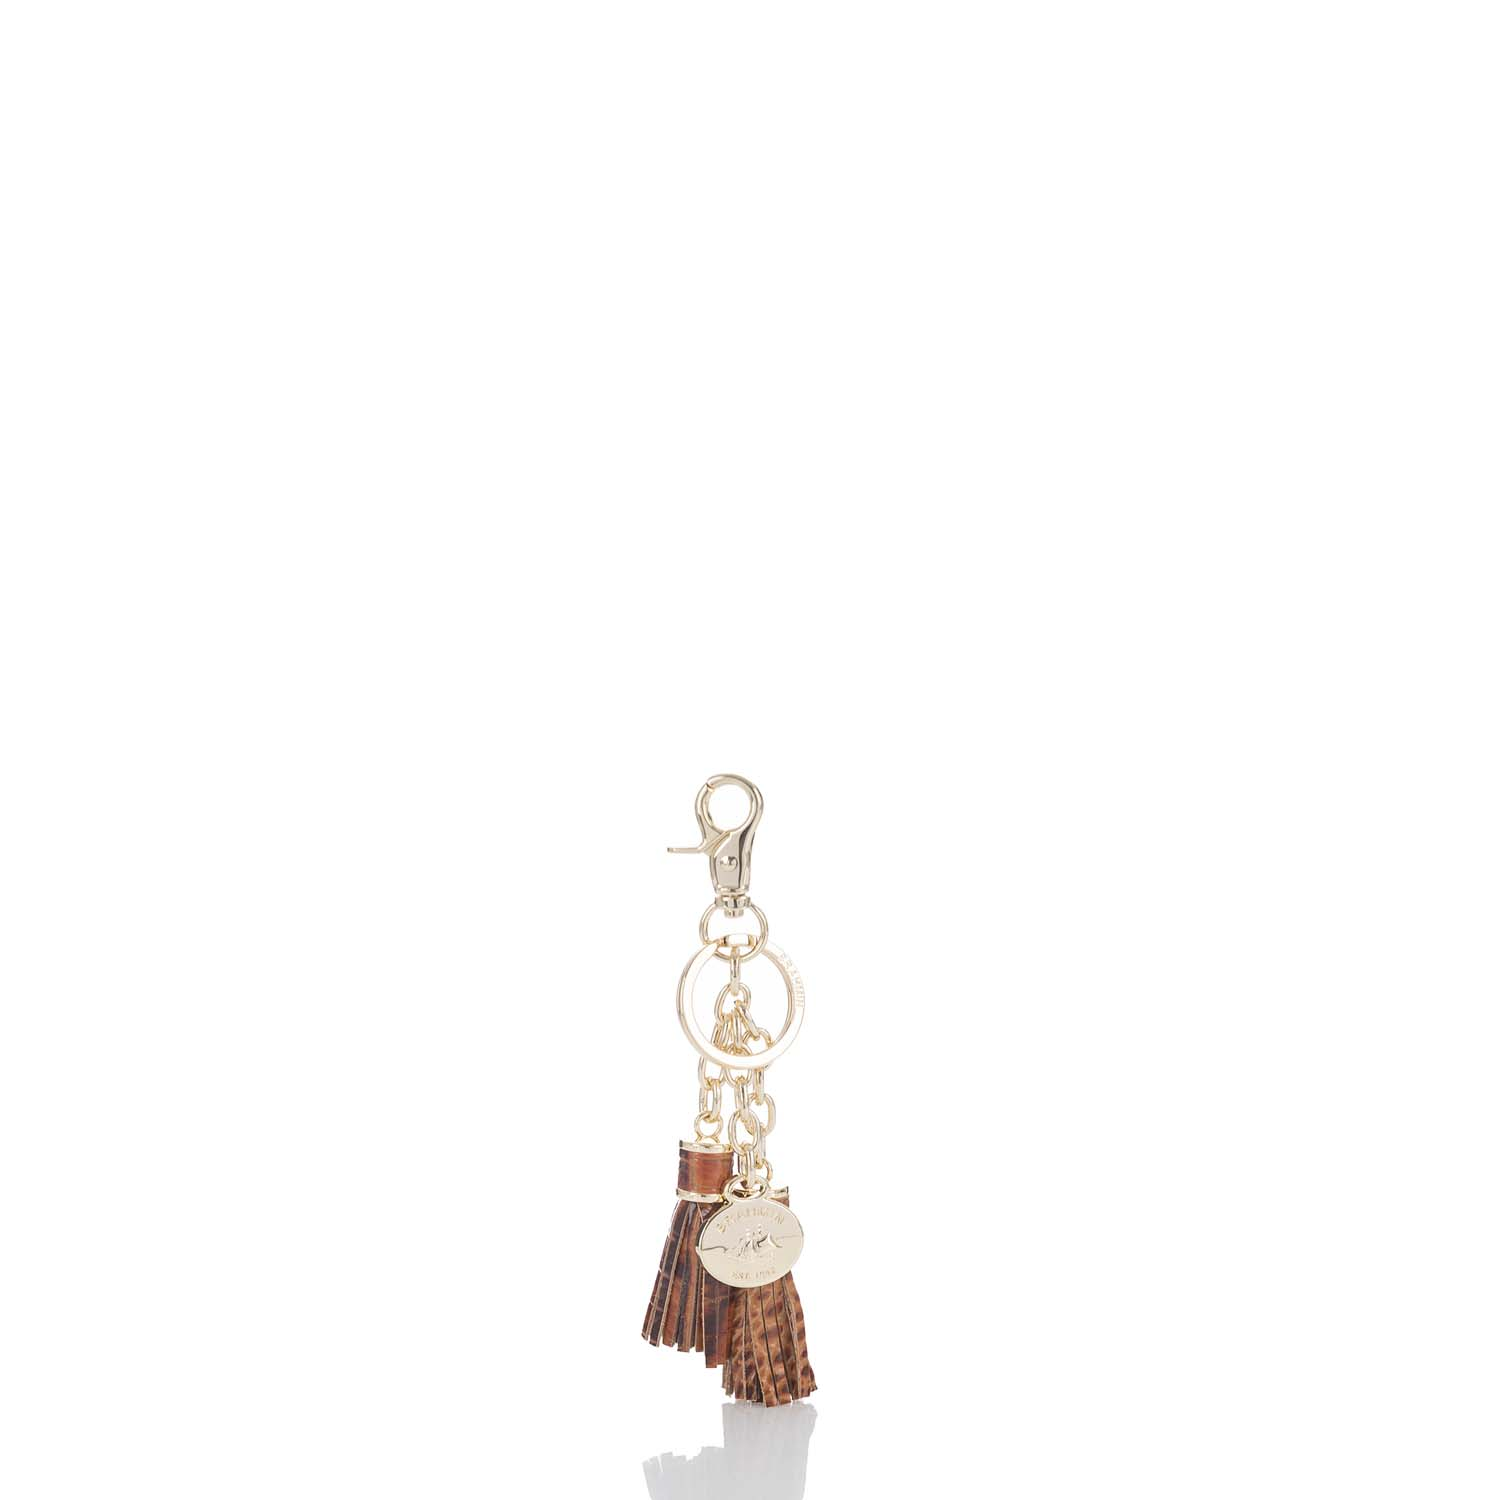 Tassel Key Ring Toasted Almond Melbourne Front